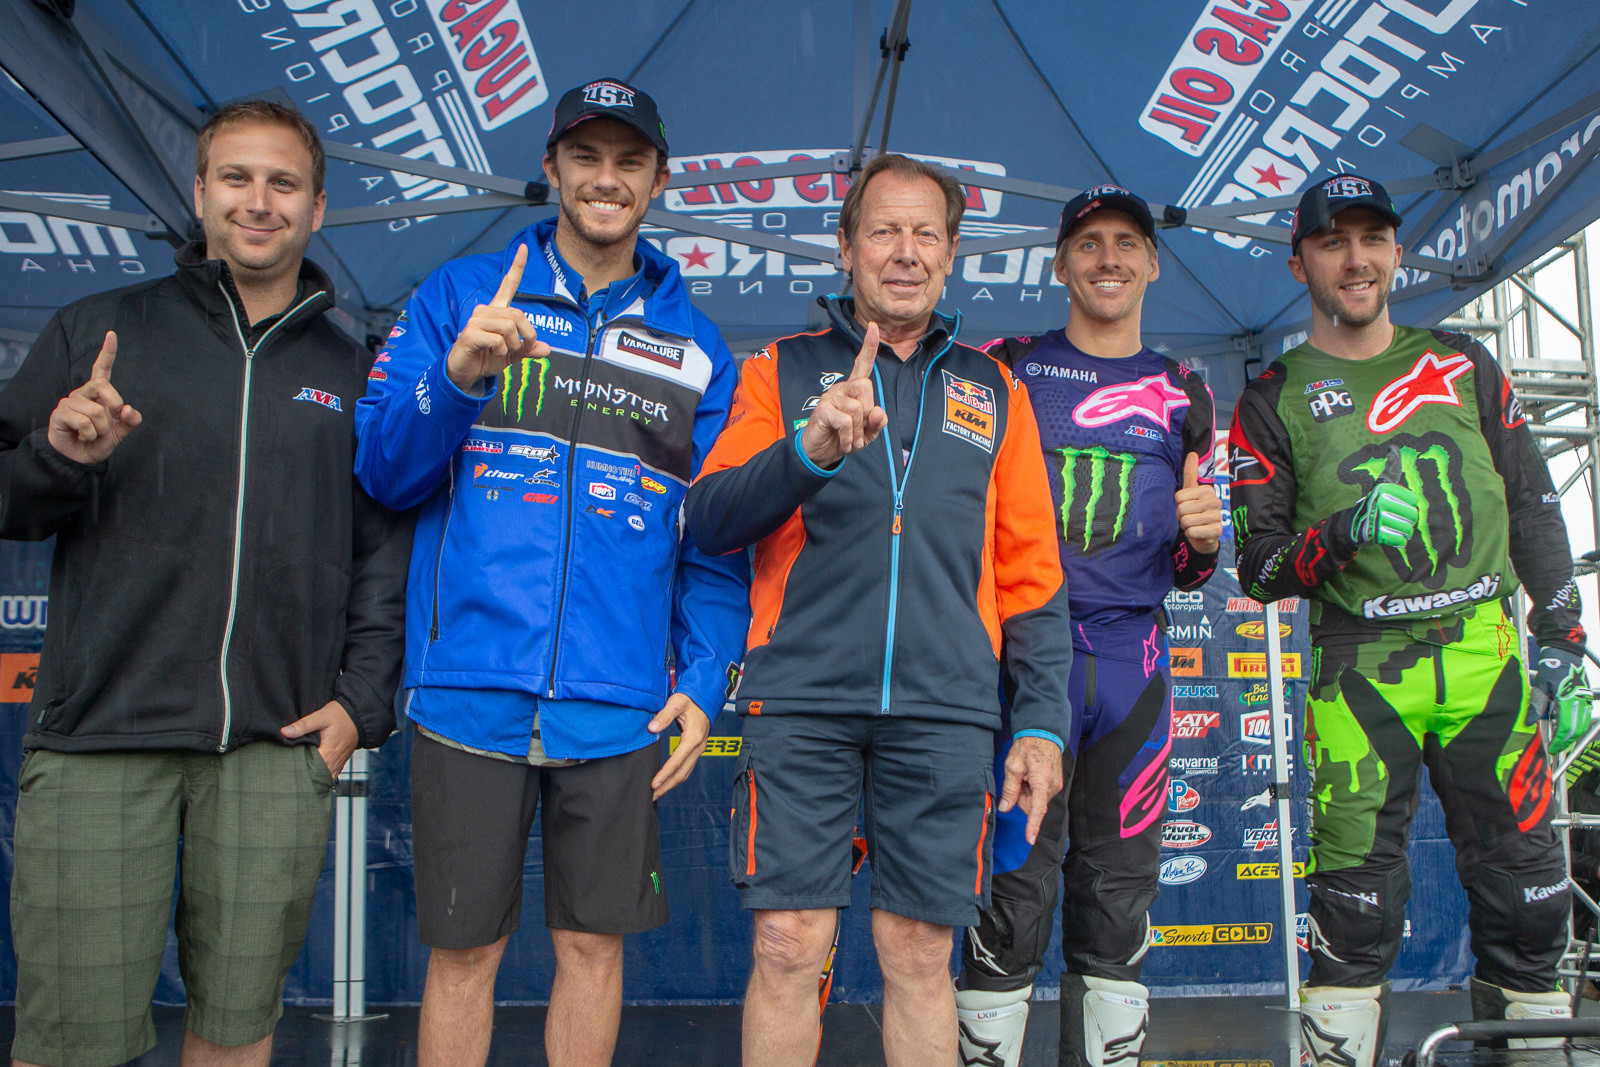 We're looking forward to rooting these guys on at the race everyone's been dreaming of for years, a Motocross of Nations at RedBud. But what's the bike revving sound in the background?